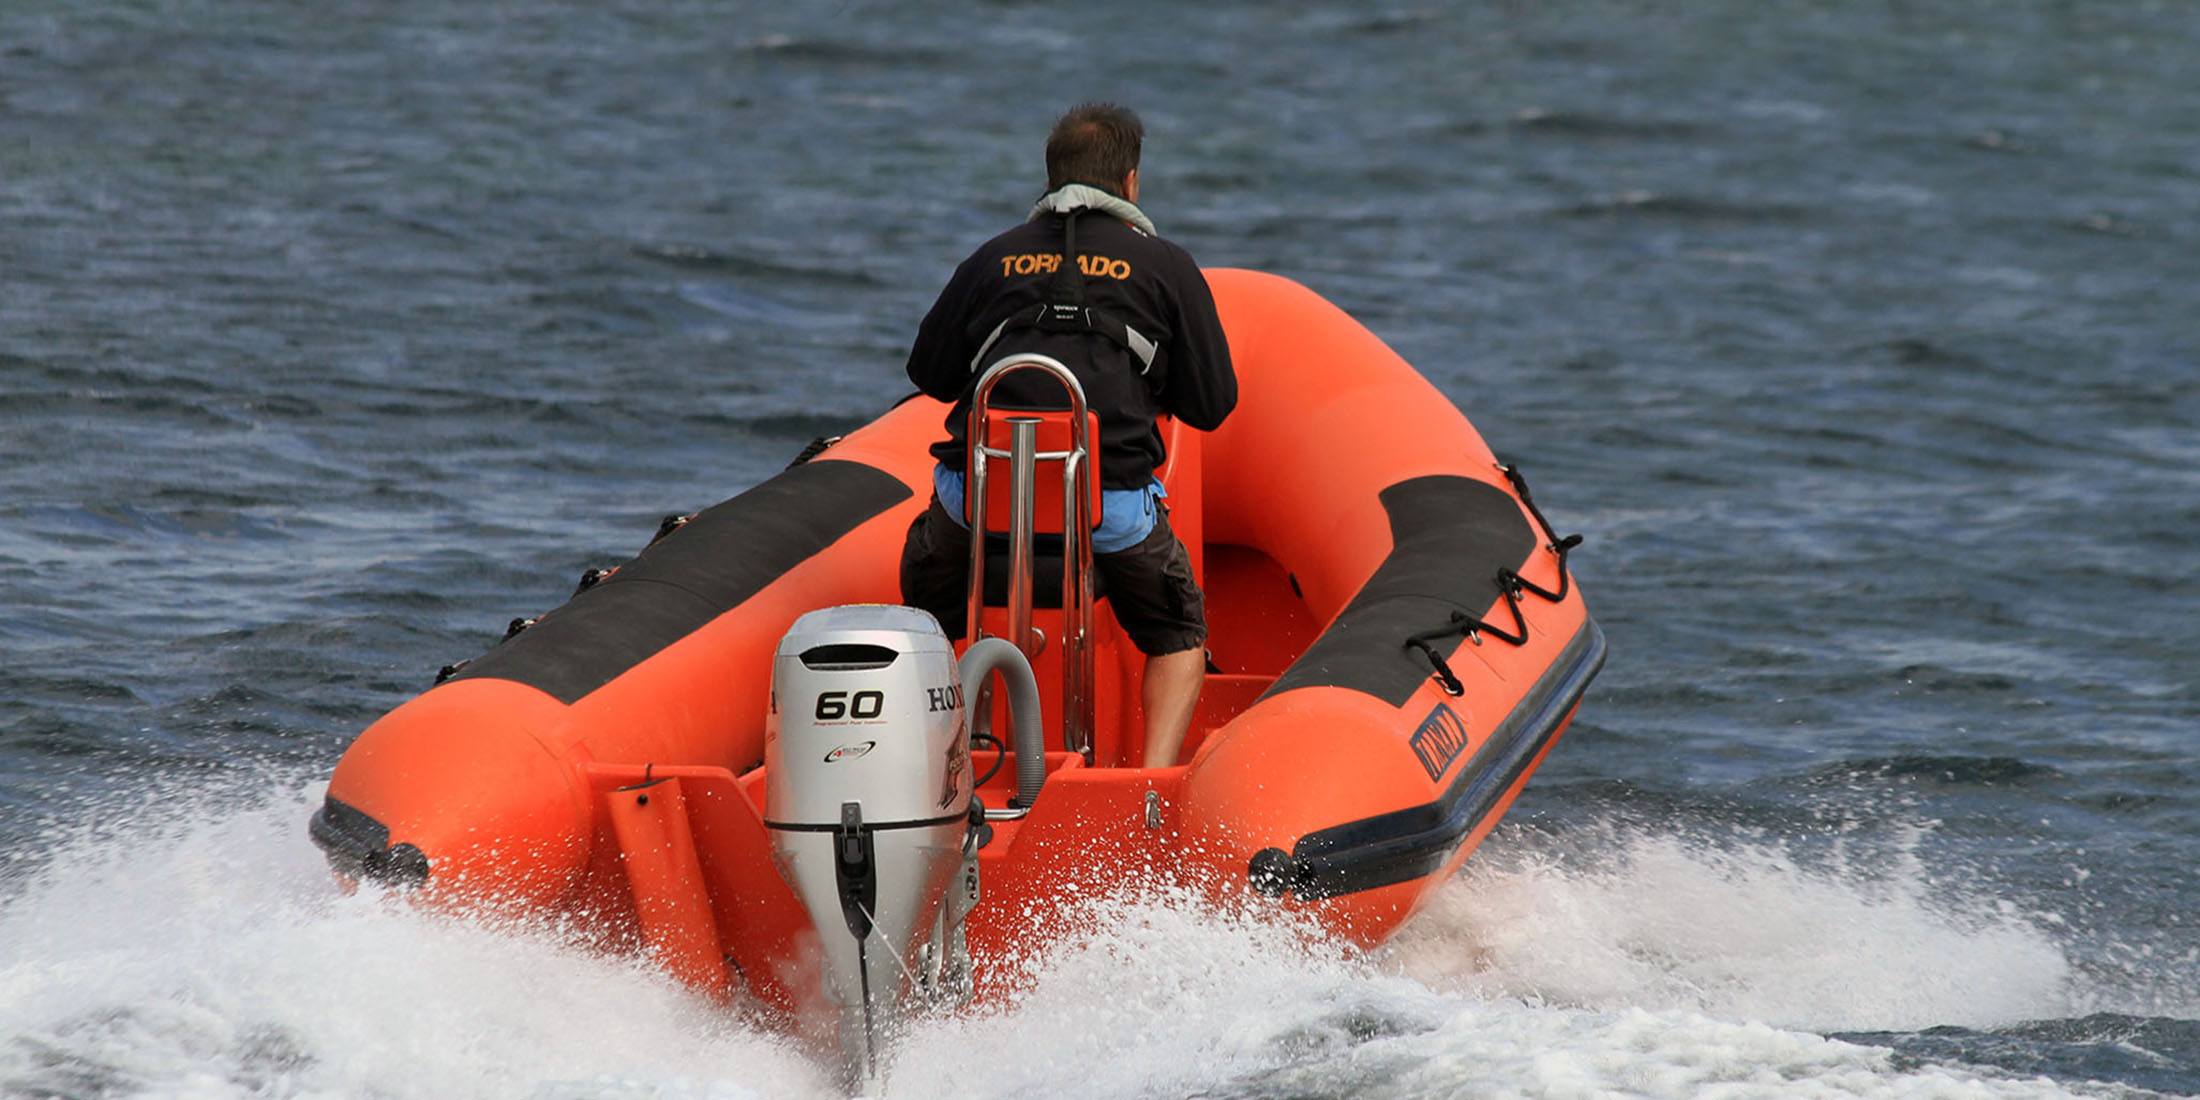 Rescue, offshore, military and police boats. Tornado 5.4m high performance RIB